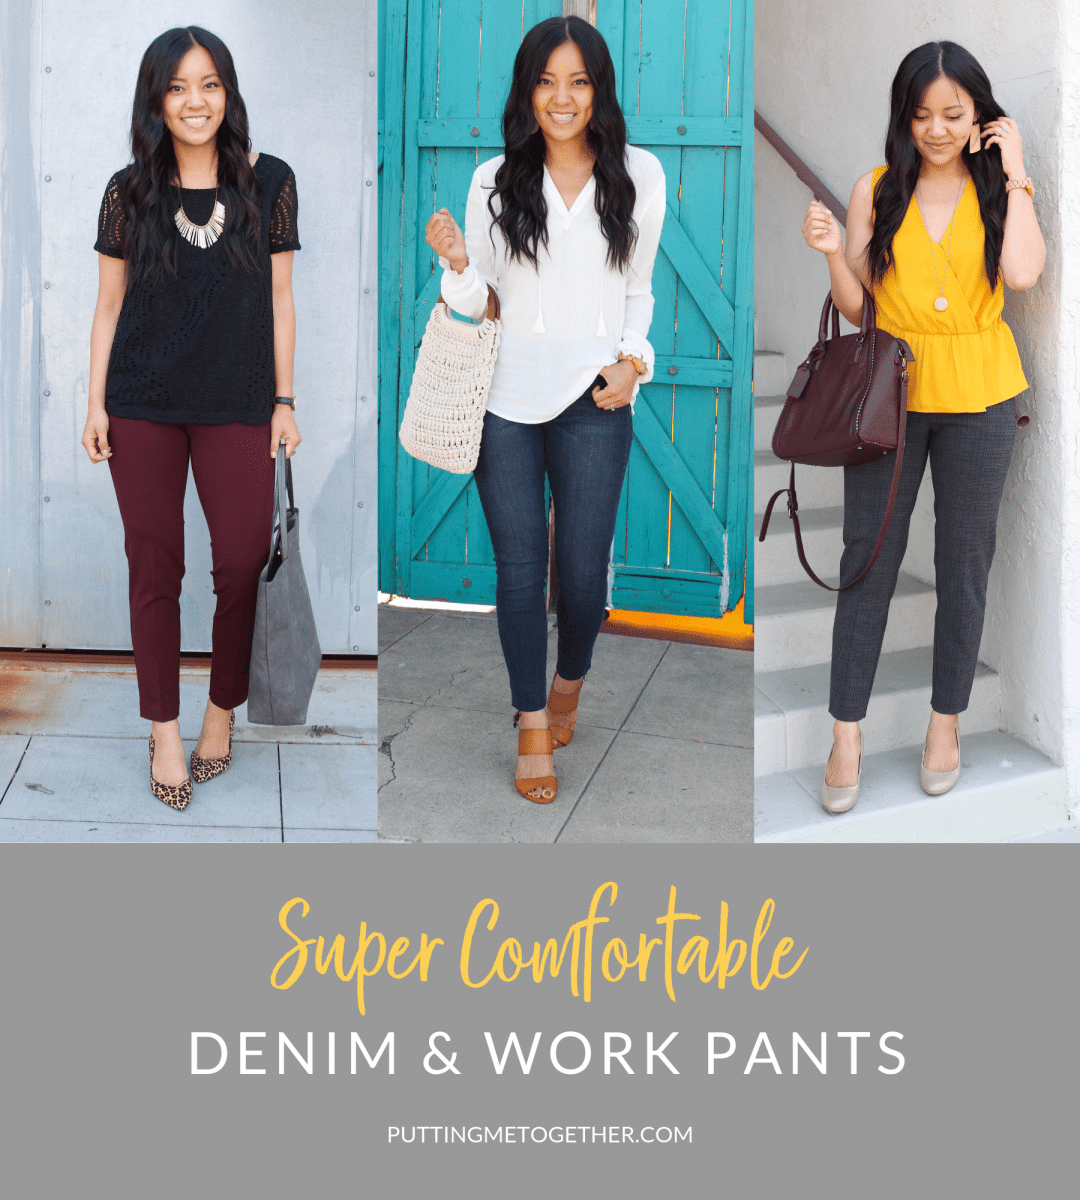 Super Comfortable Jeans and Work Pants with Liverpool